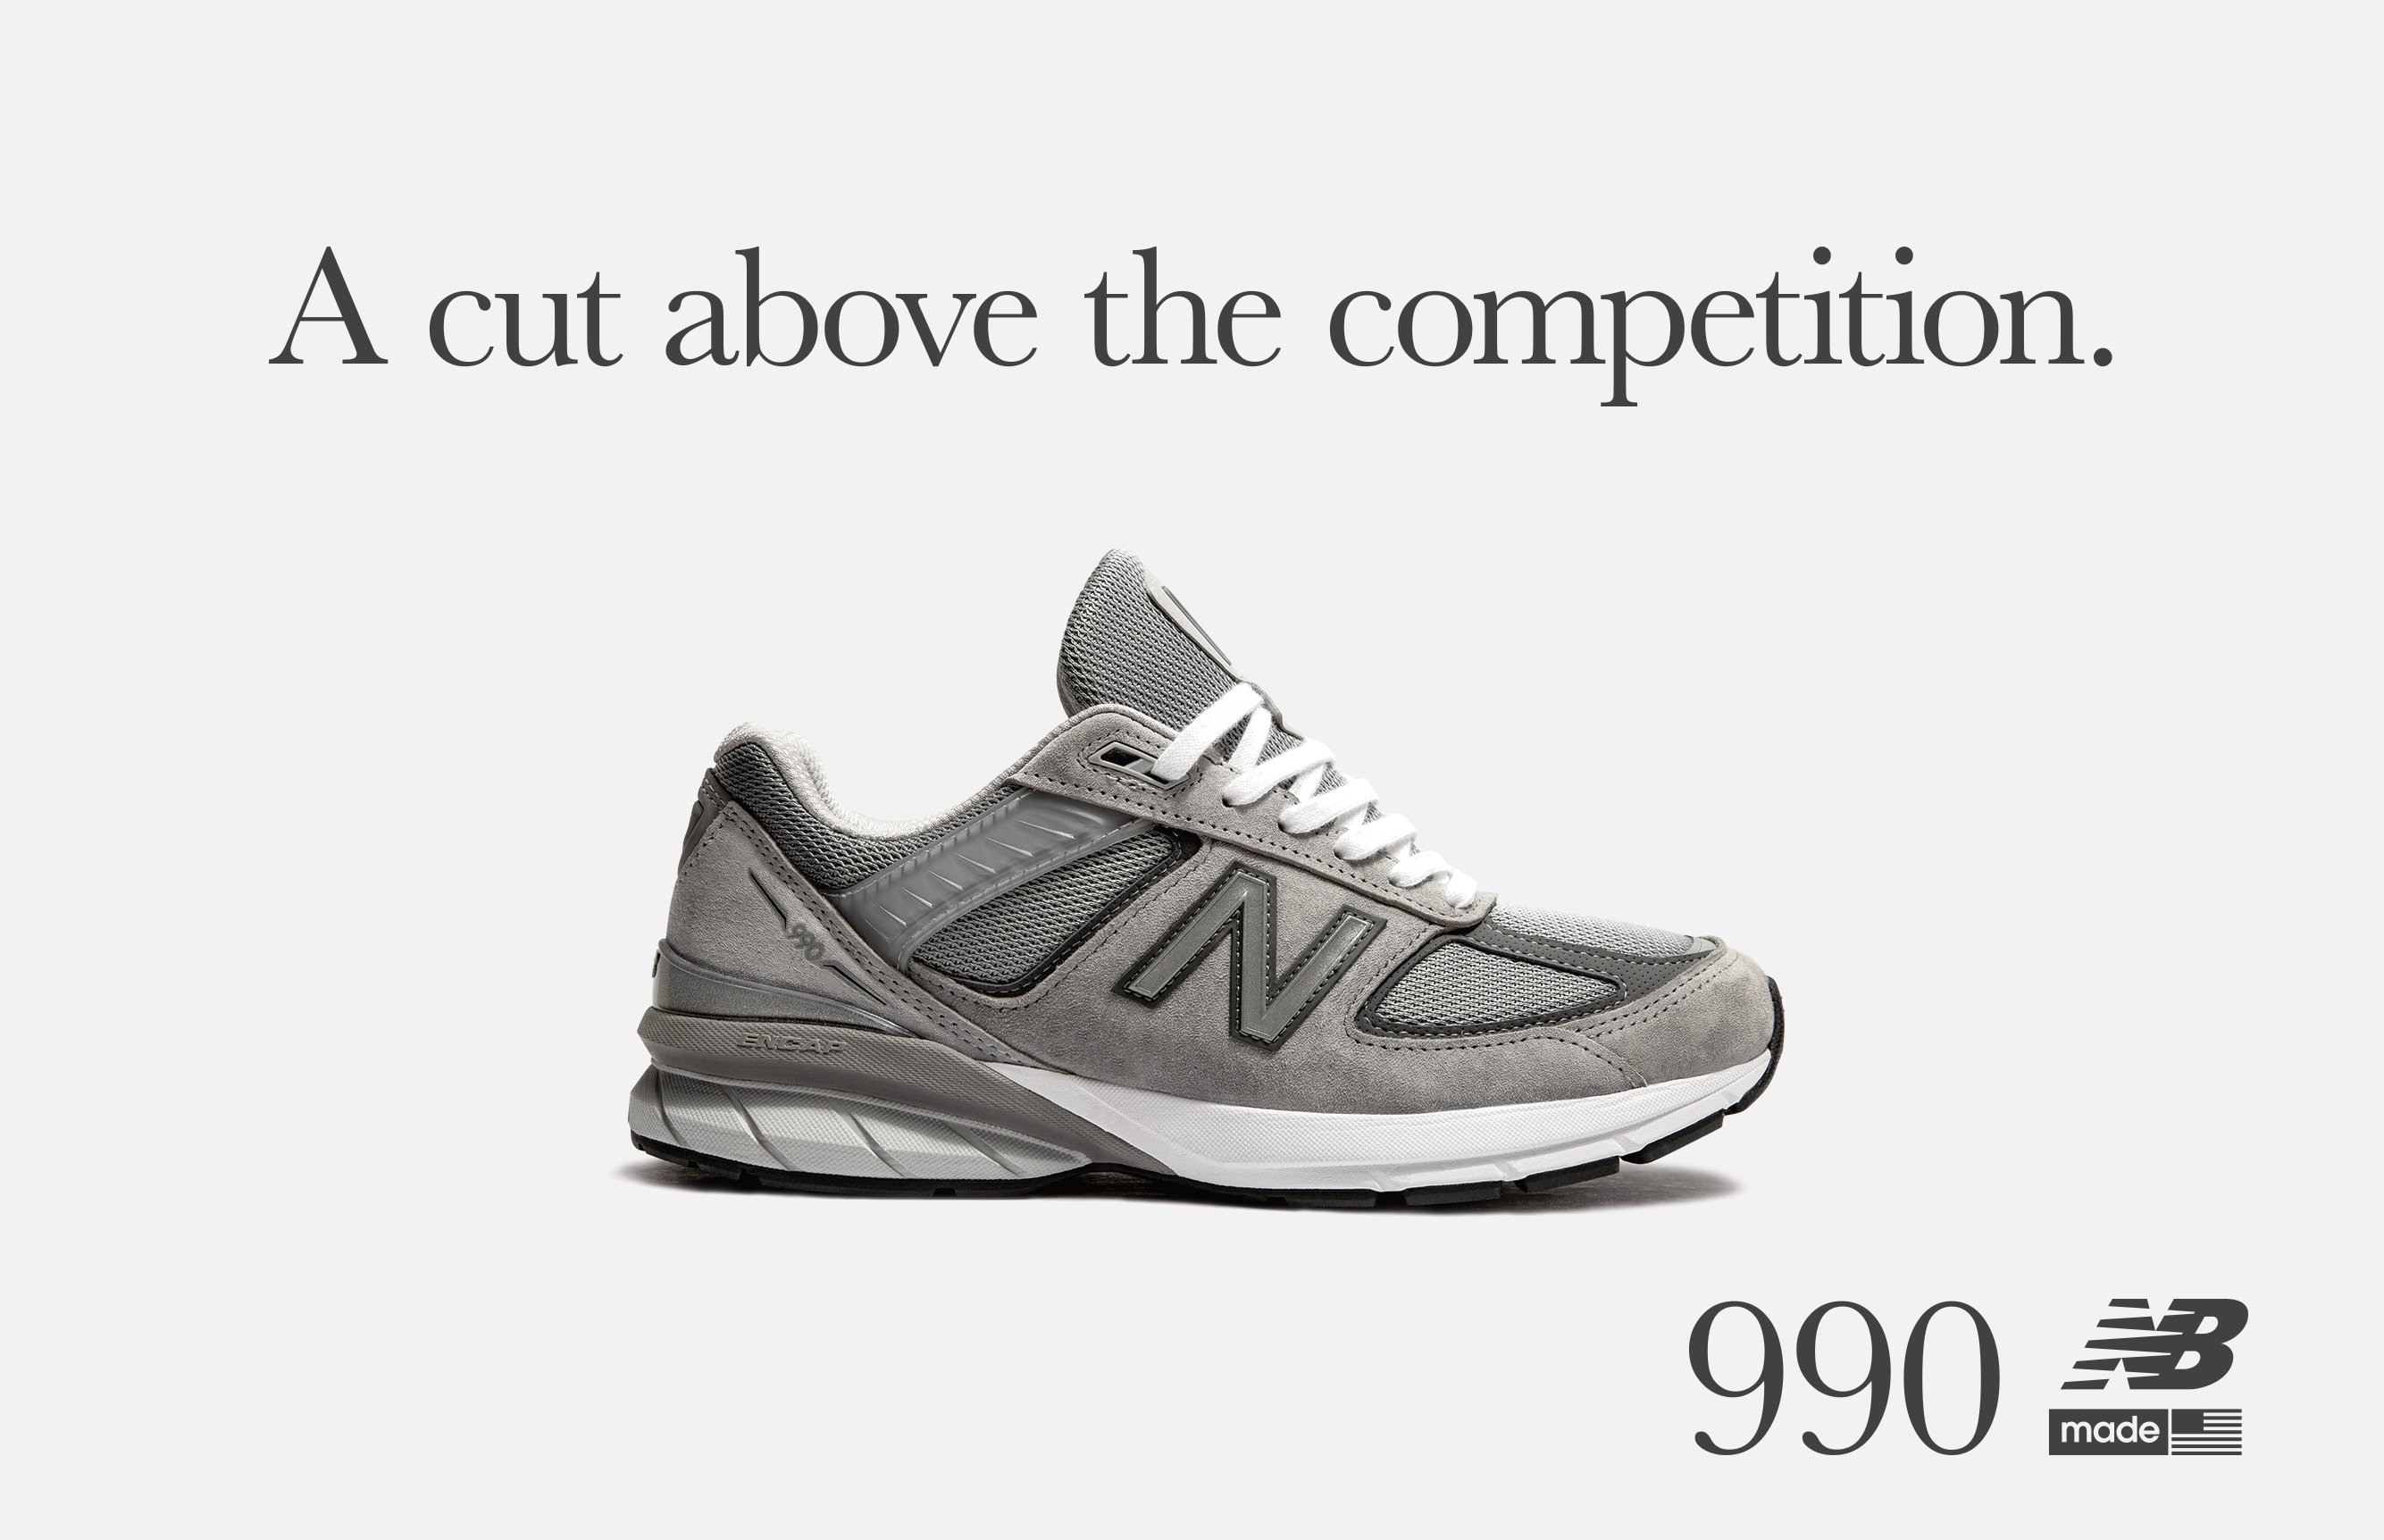 info for e613a b8e28 The New Balance 990v5 Is Available Now | RESPECT.